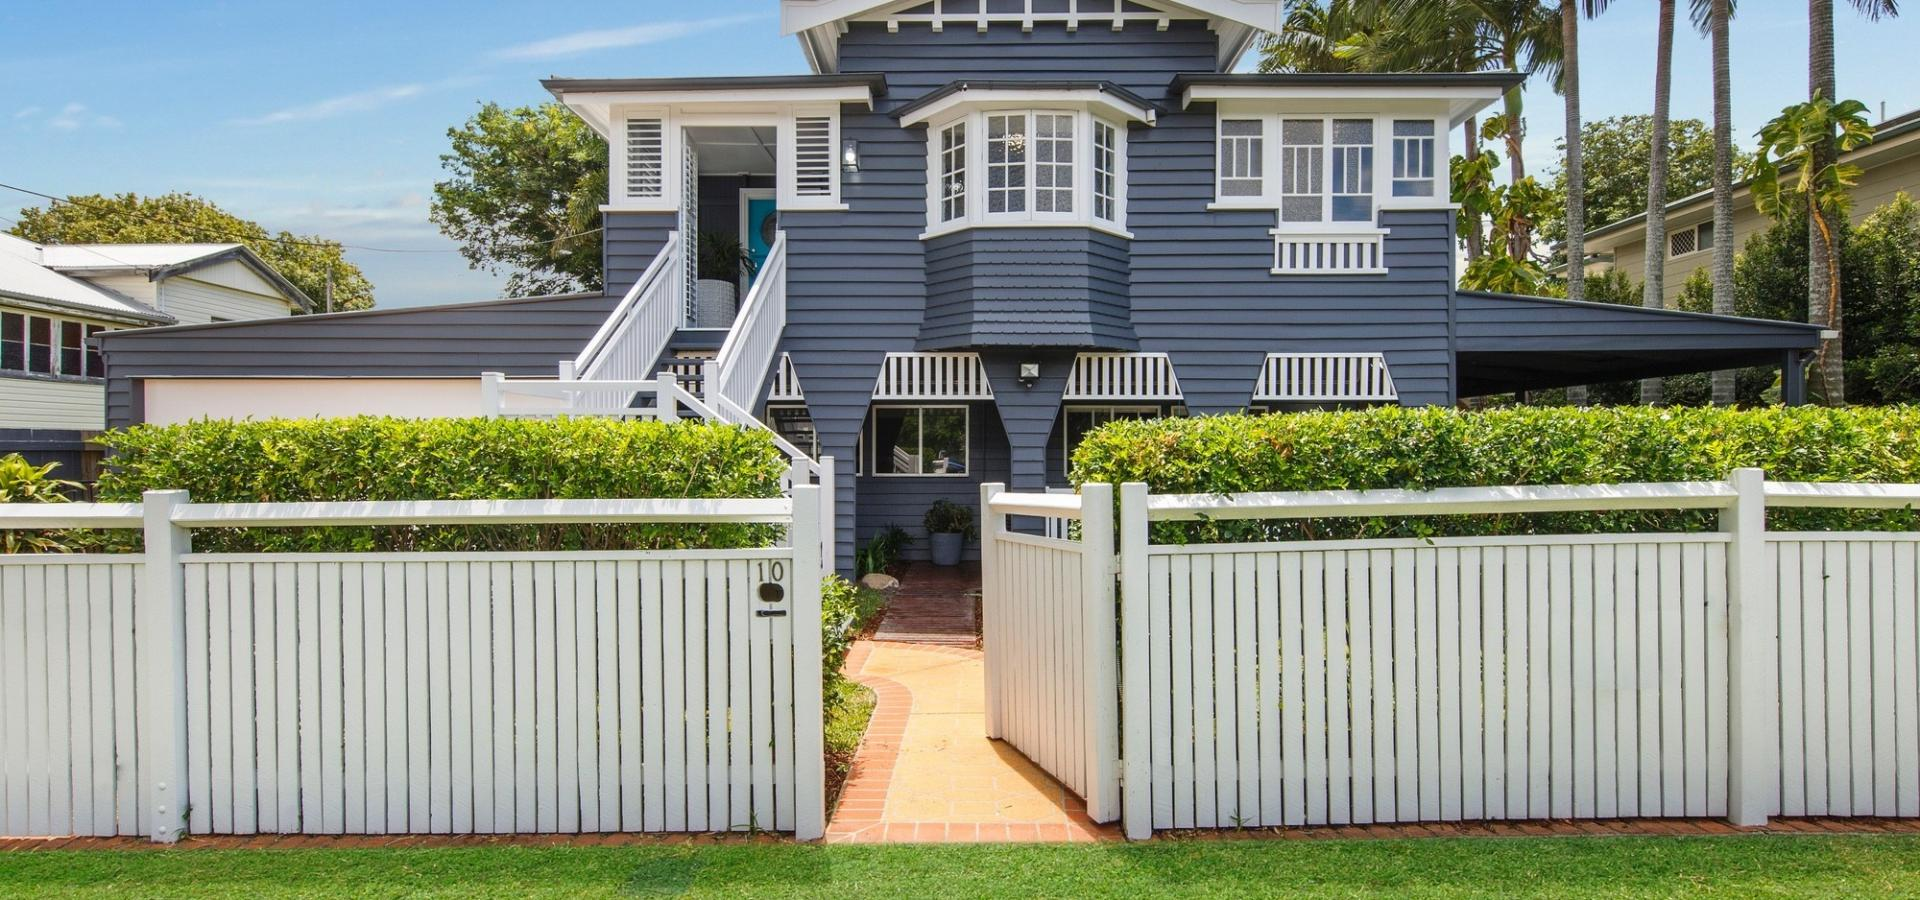 Renovated Queenslander on 810m2 block of land + within 10kms to CBD + dual living